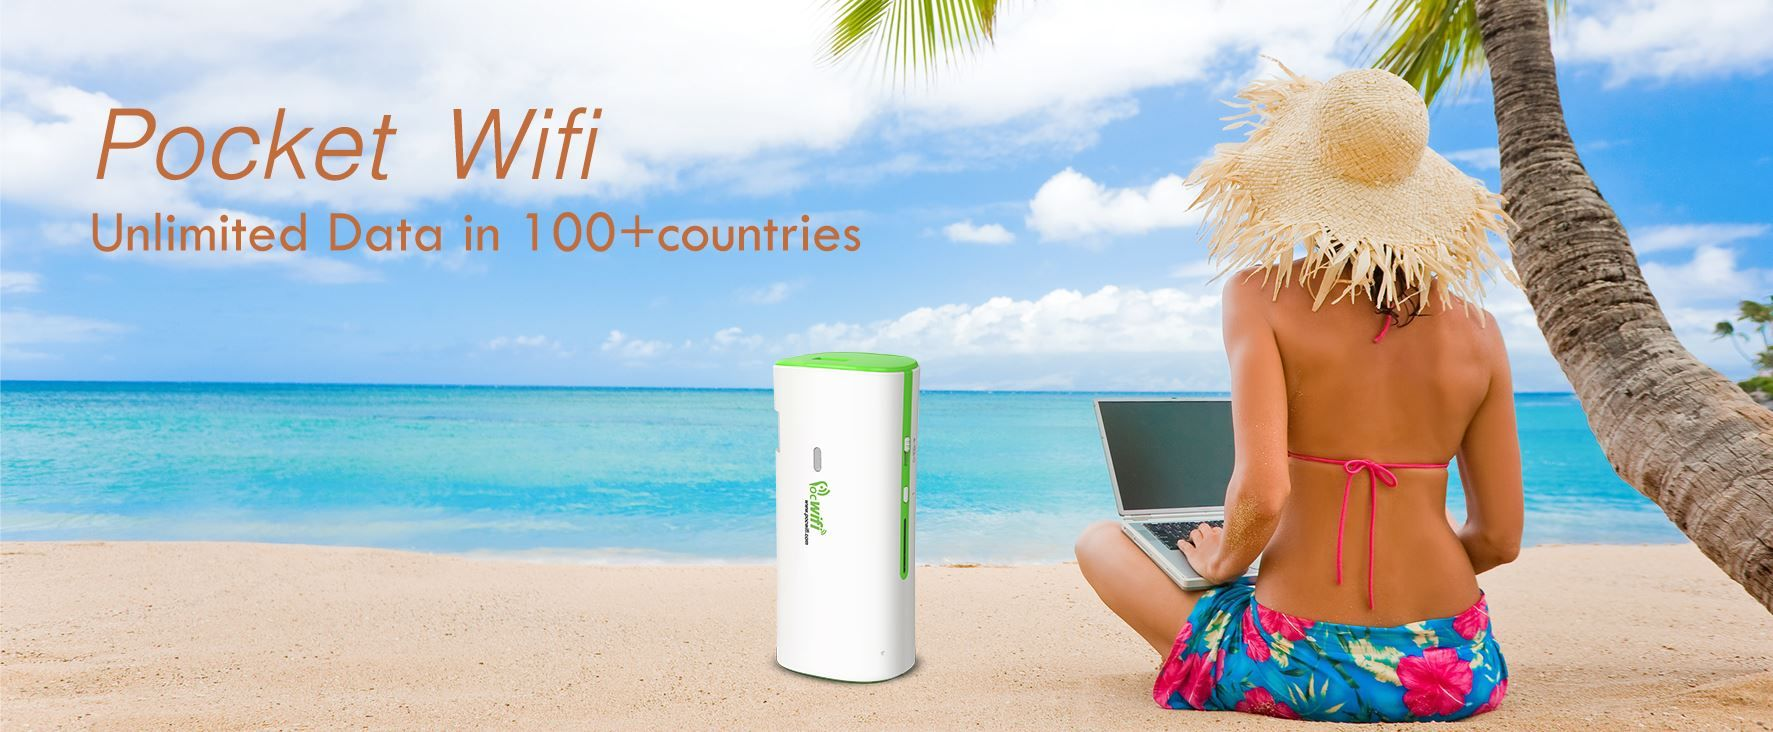 - Unlimited data - Connect up to 5 devices - No roaming charges - No SIM cards needed - Works in over 100 countries - Automatic switch to the strongest network - battery runs 12+ hours per charge - Charge your mobile phone battery Share the moment anytime, Travel with Pocwifi anywhere .】 【No.1 Australasia rental WiFi services for travelers.】 www.pocwifi.com/